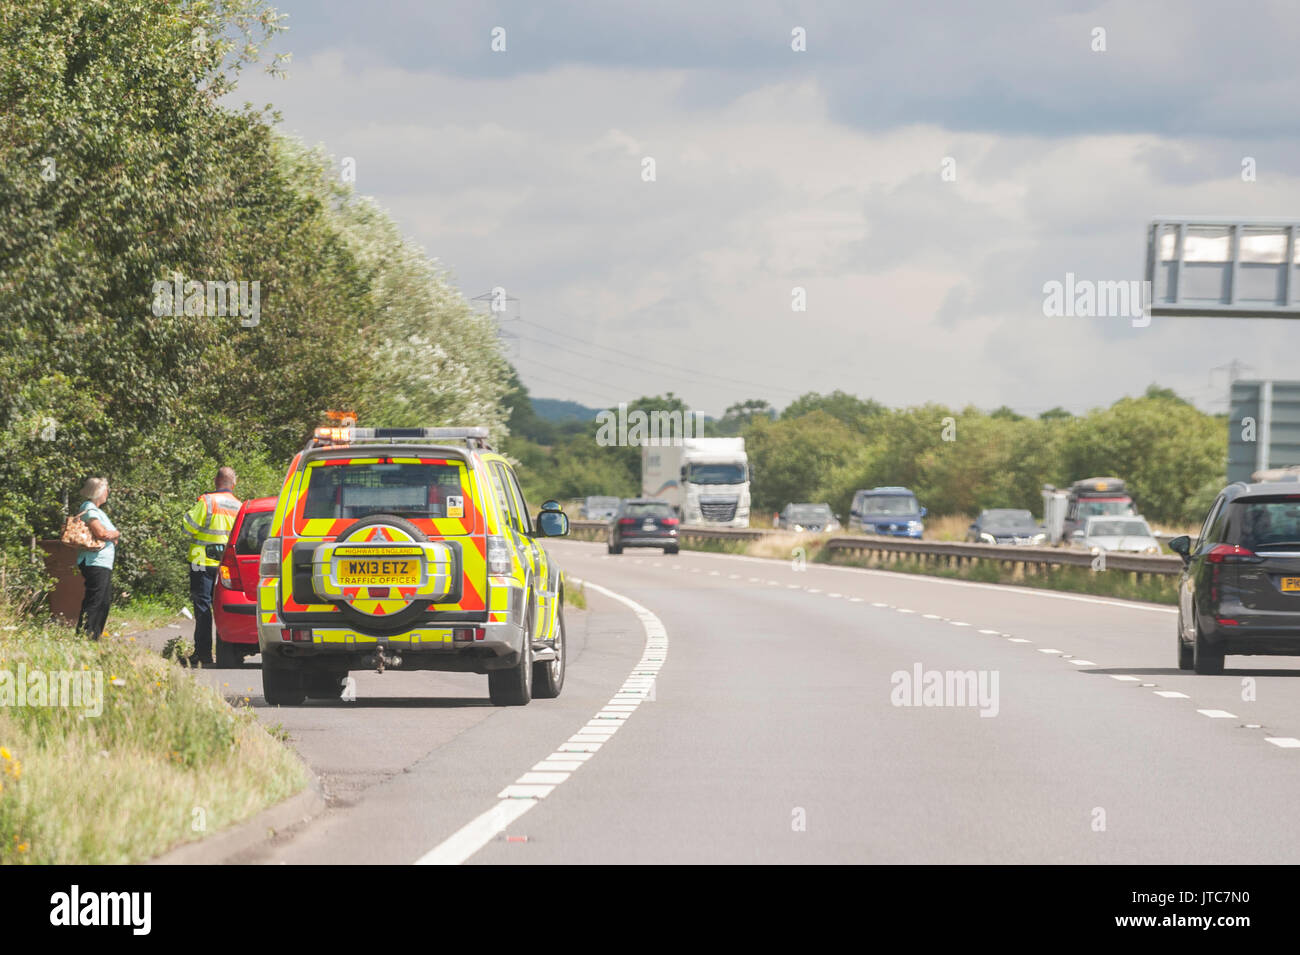 A Highways Traffic Officer on a main road in the Uk - Stock Image